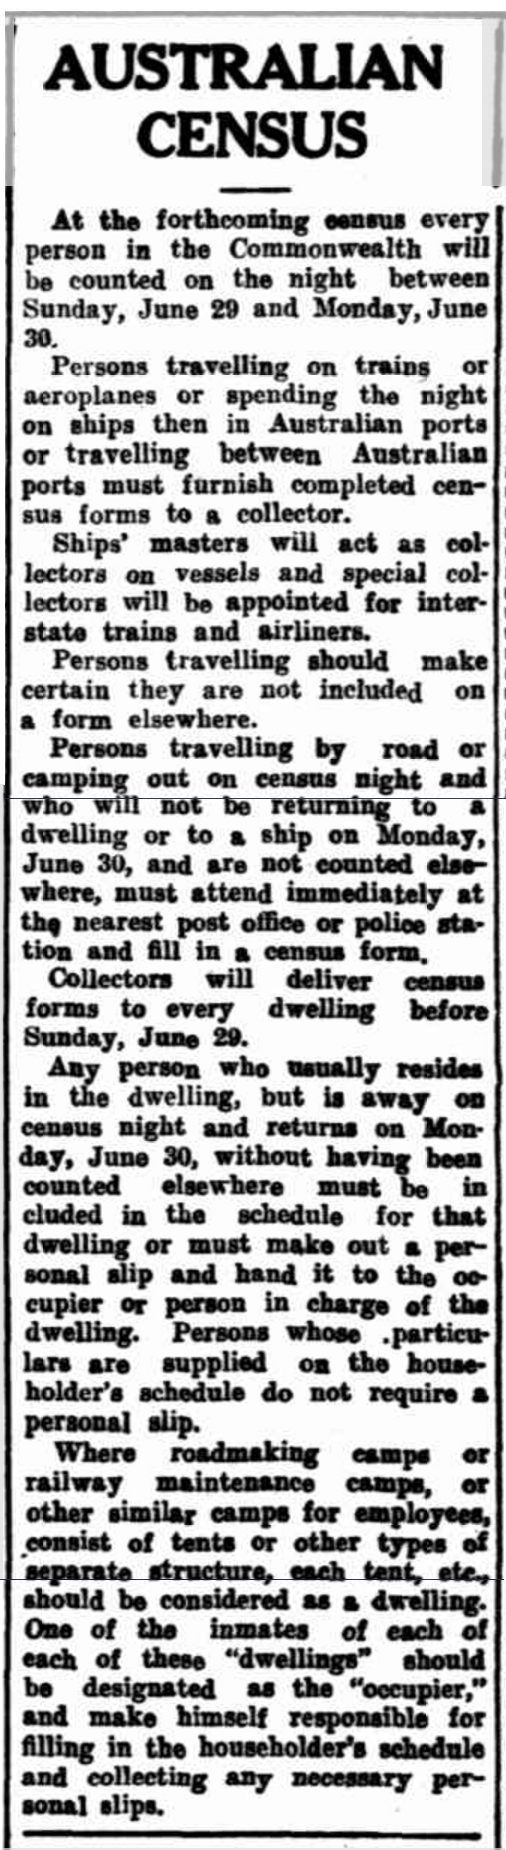 Newspaper report about the upcoming census on 30th June 1947. Instructions are included for those travelling interstate on trains and by ship. Source: AUSTRALIAN CENSUS (1947, June 17). Morning Bulletin (Rockhampton, Qld. : 1878 - 1954), p. 7. Retrieved November 28, 2016, from http://nla.gov.au/nla.news-article56785721